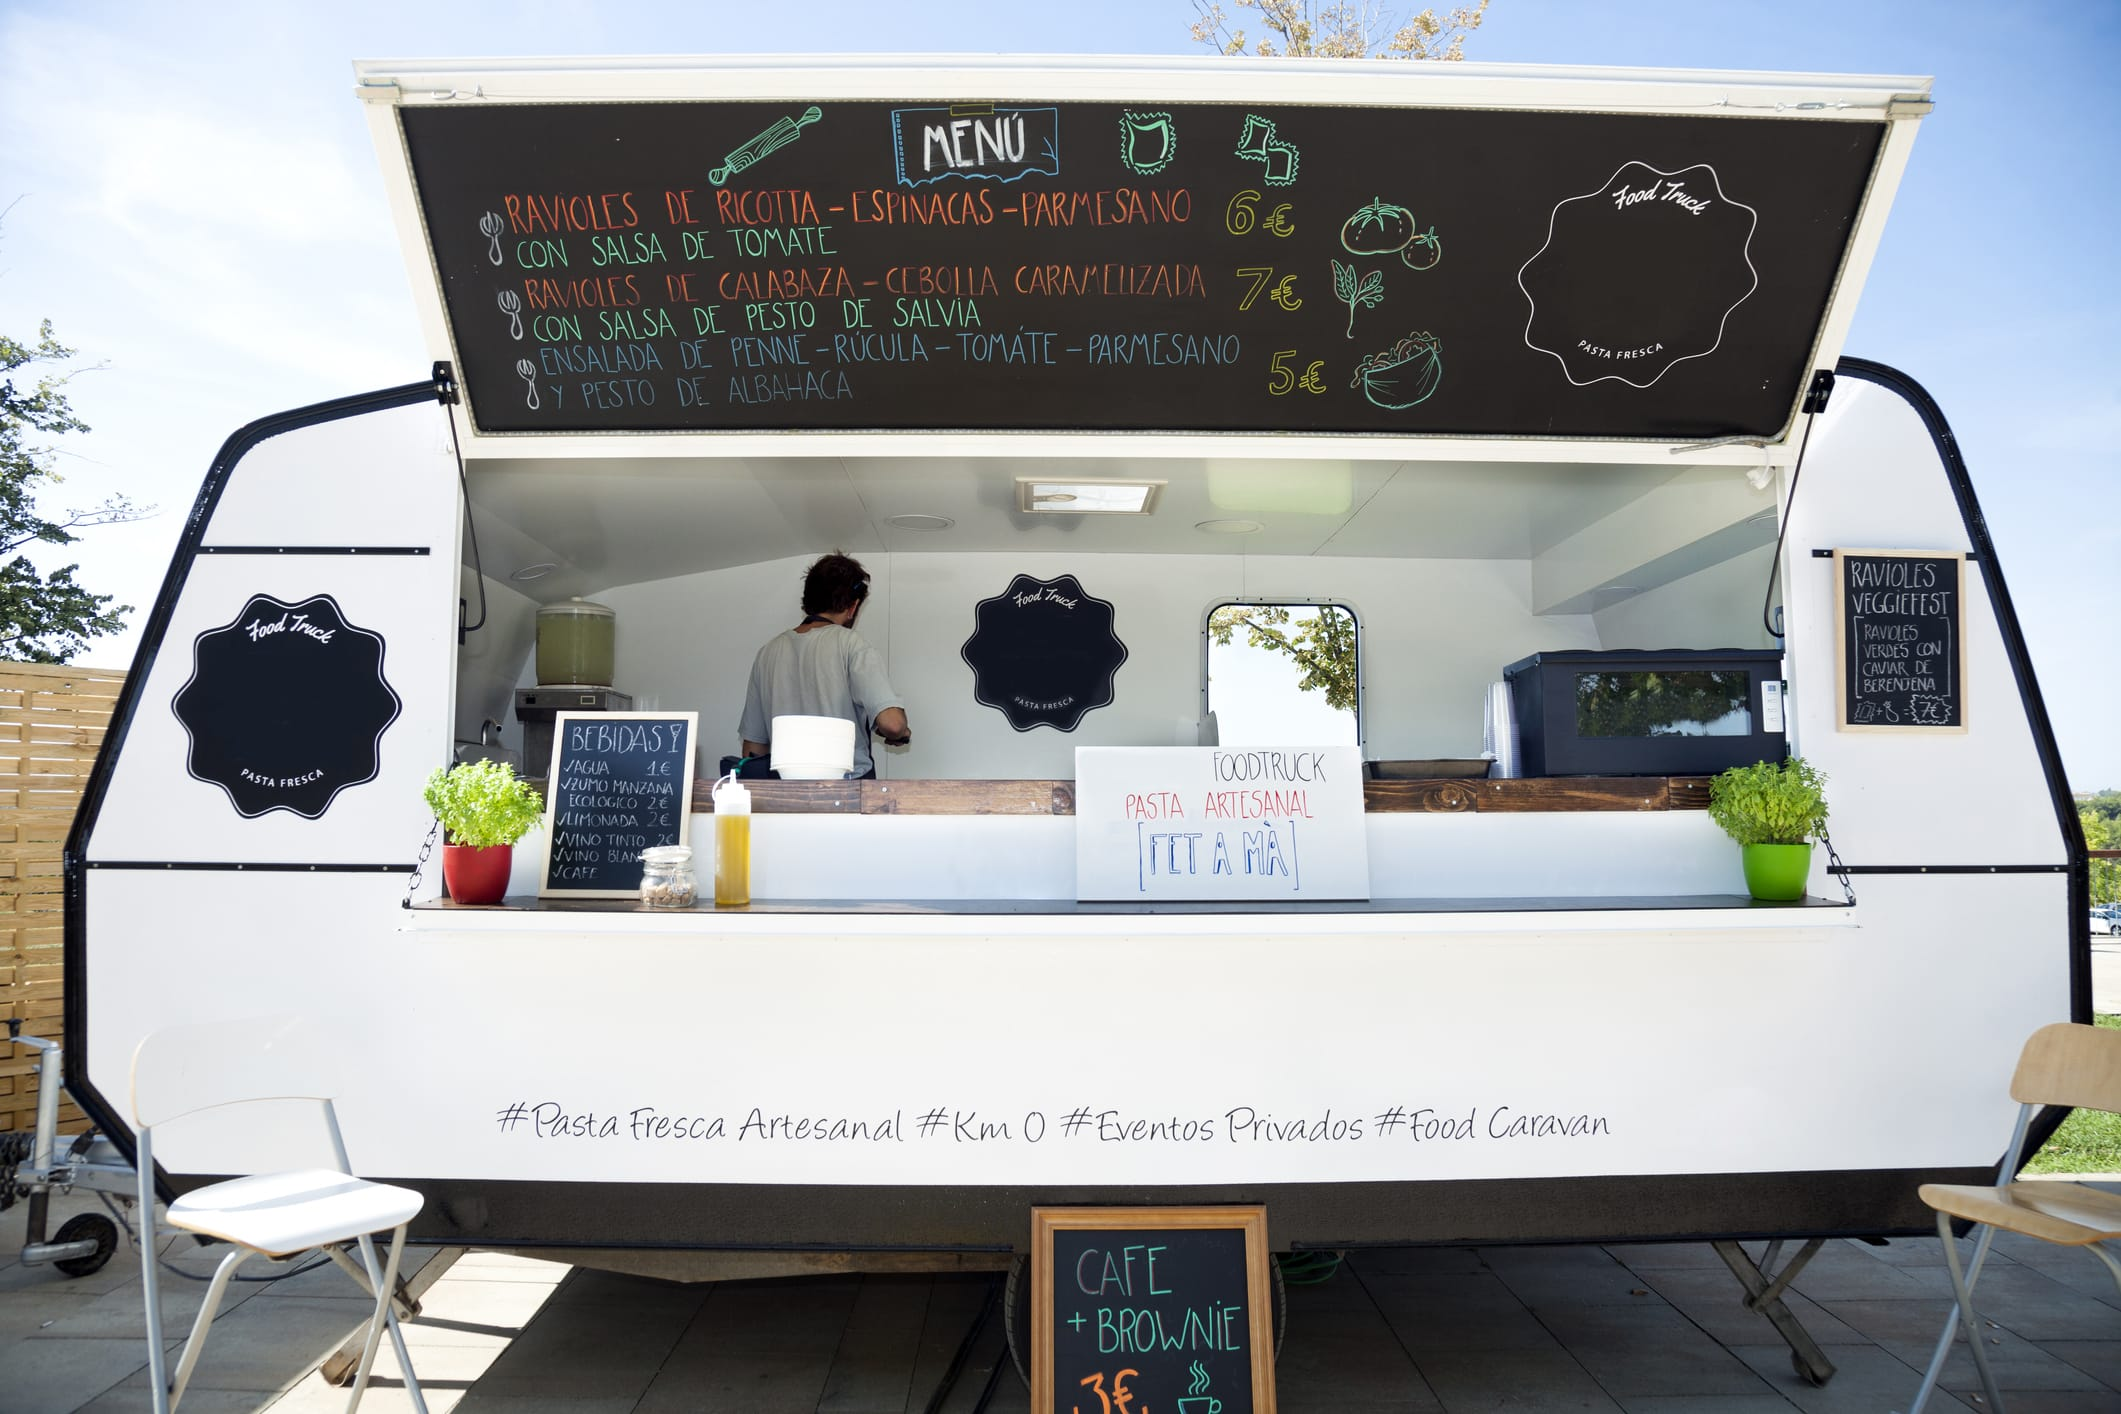 Food Truck Fire Safety Hazards Continue to Fuel Concern - Fraker Fire Protection